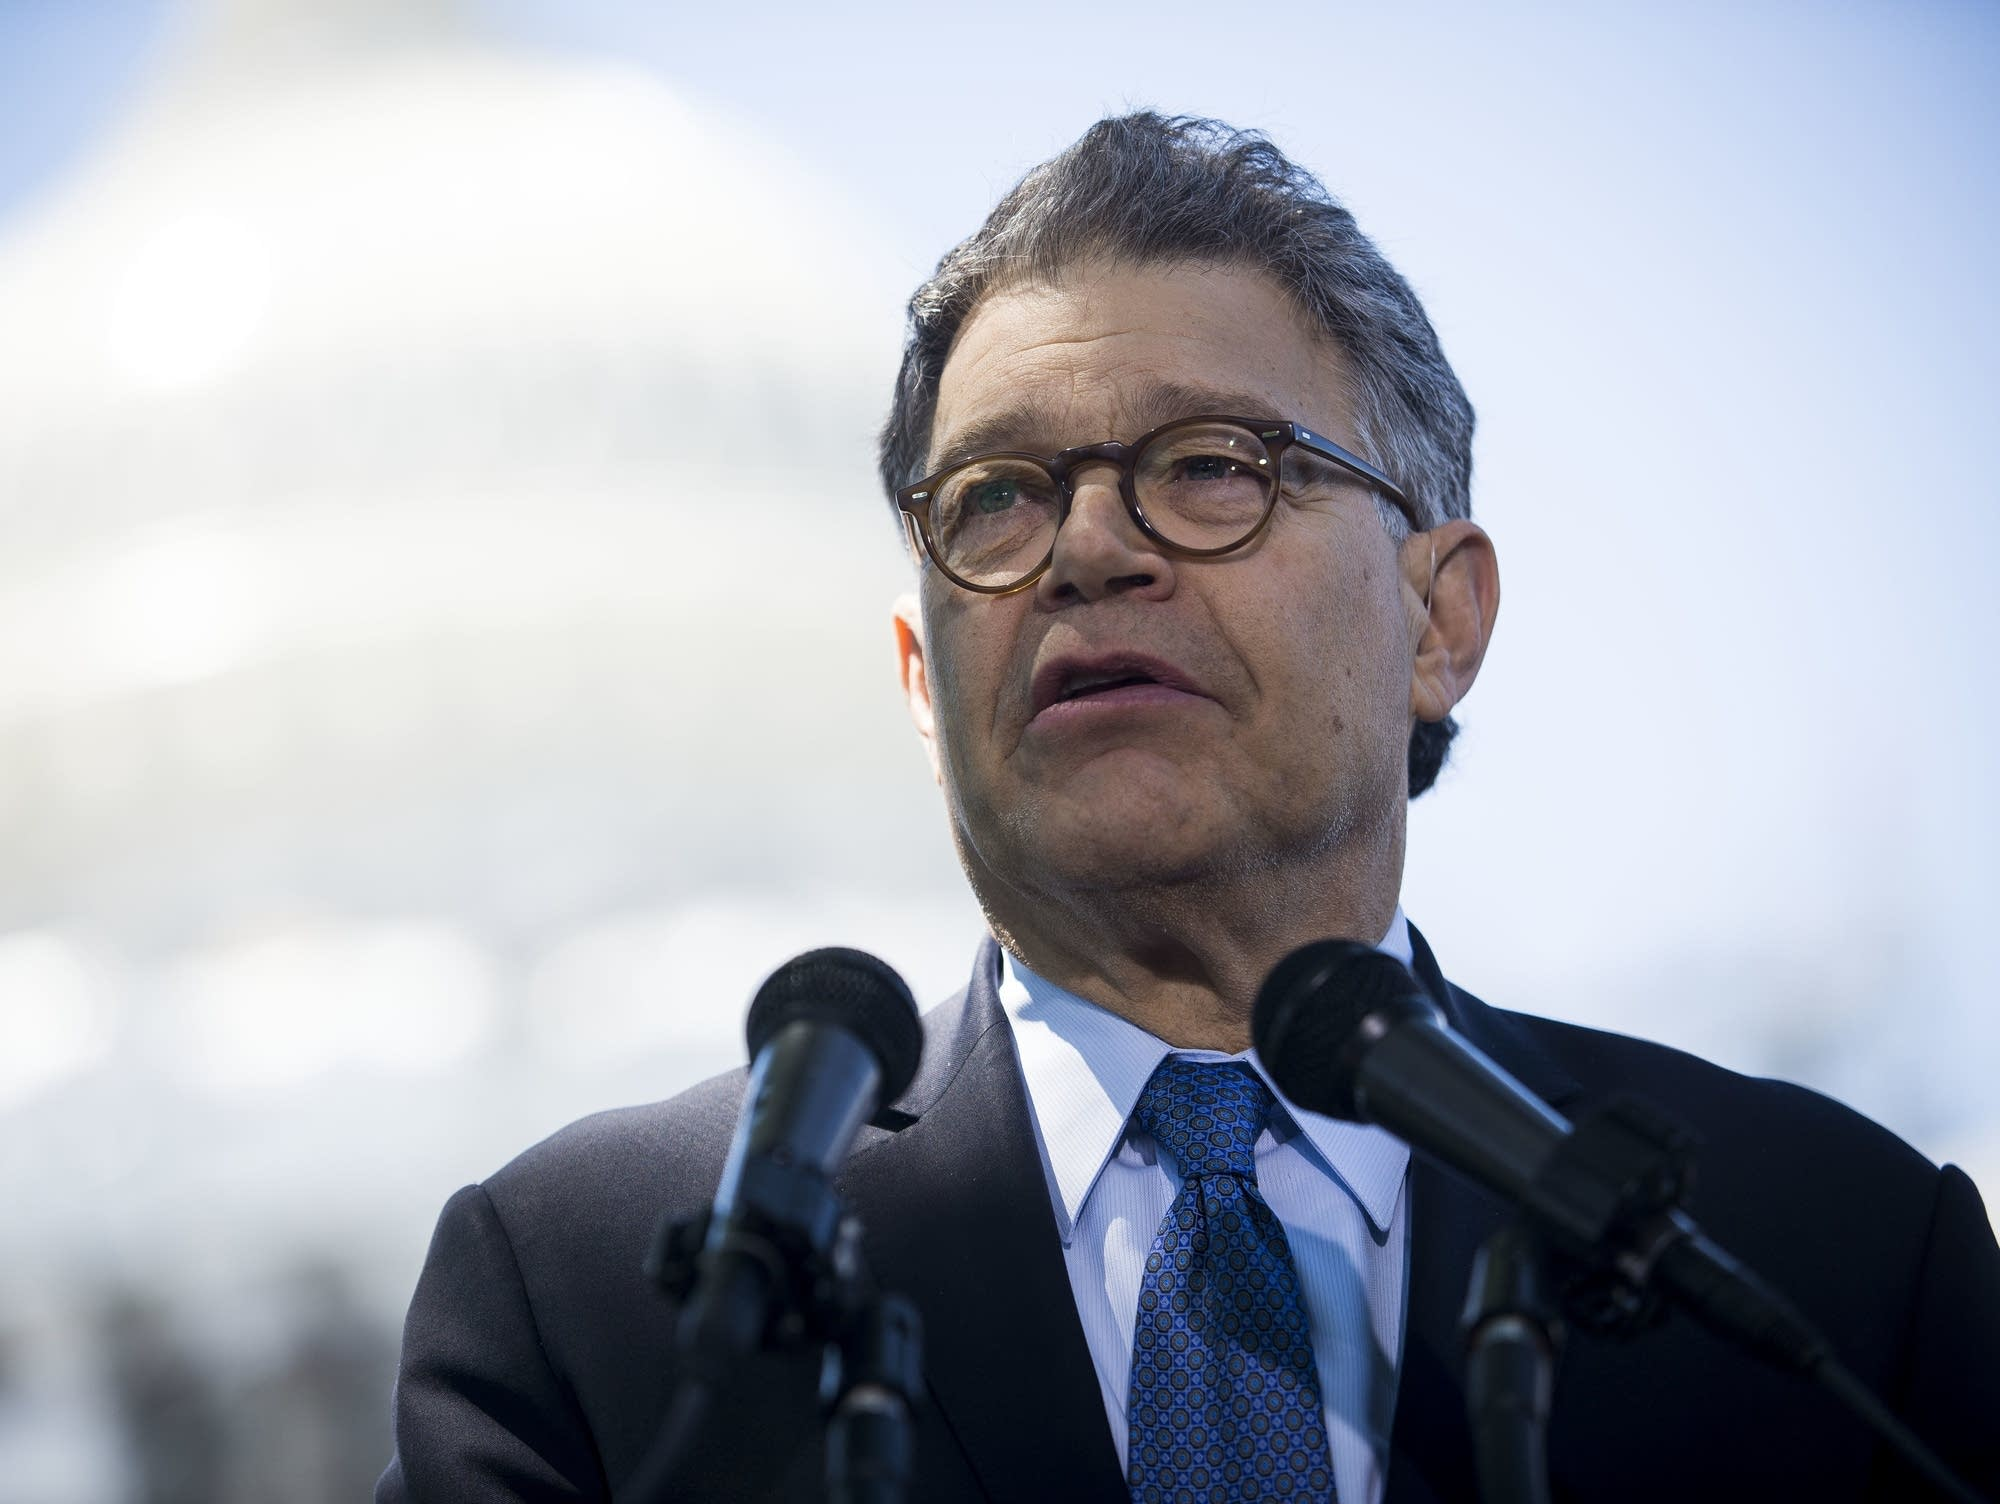 Franken Announces How He Will Vote on Sessions' Confirmation